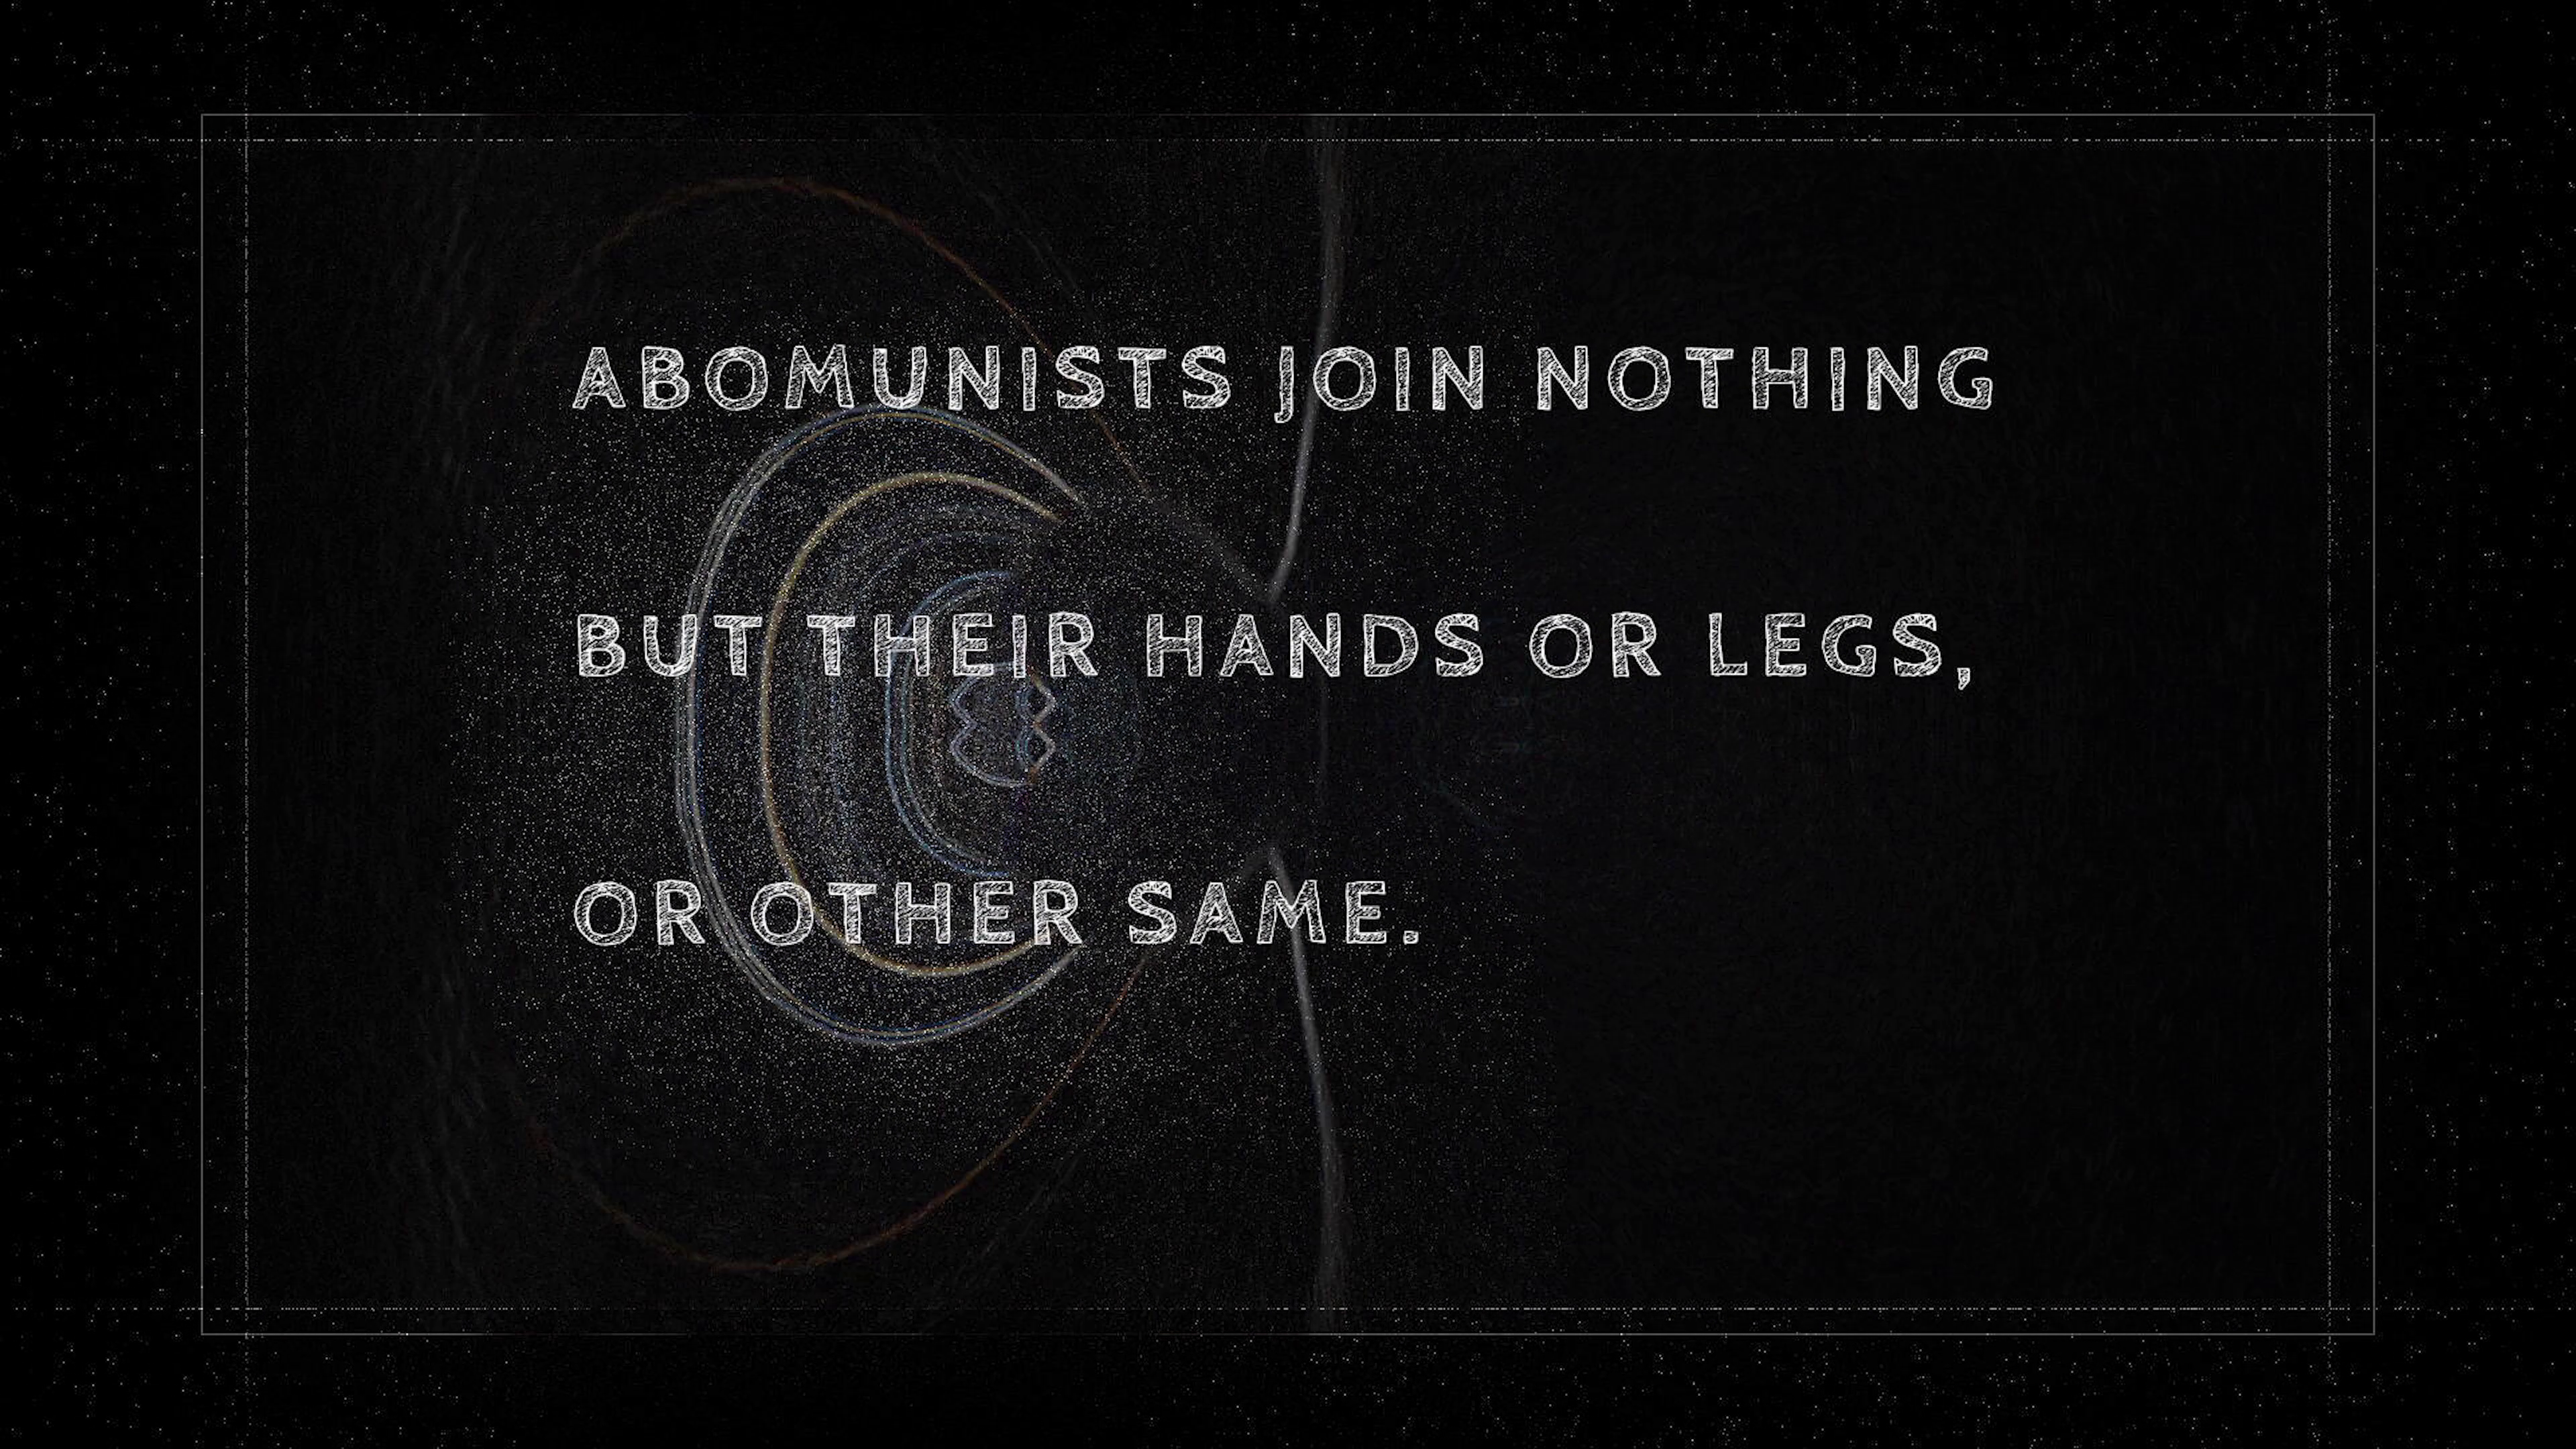 The image is a screengrab from the video 'your dataset won't let me thrive' and contains text laid against a black background with some generative abstract imagery. The text reads 'Abomunists Join Nothing But Their Hands or Legs, or Other Same'